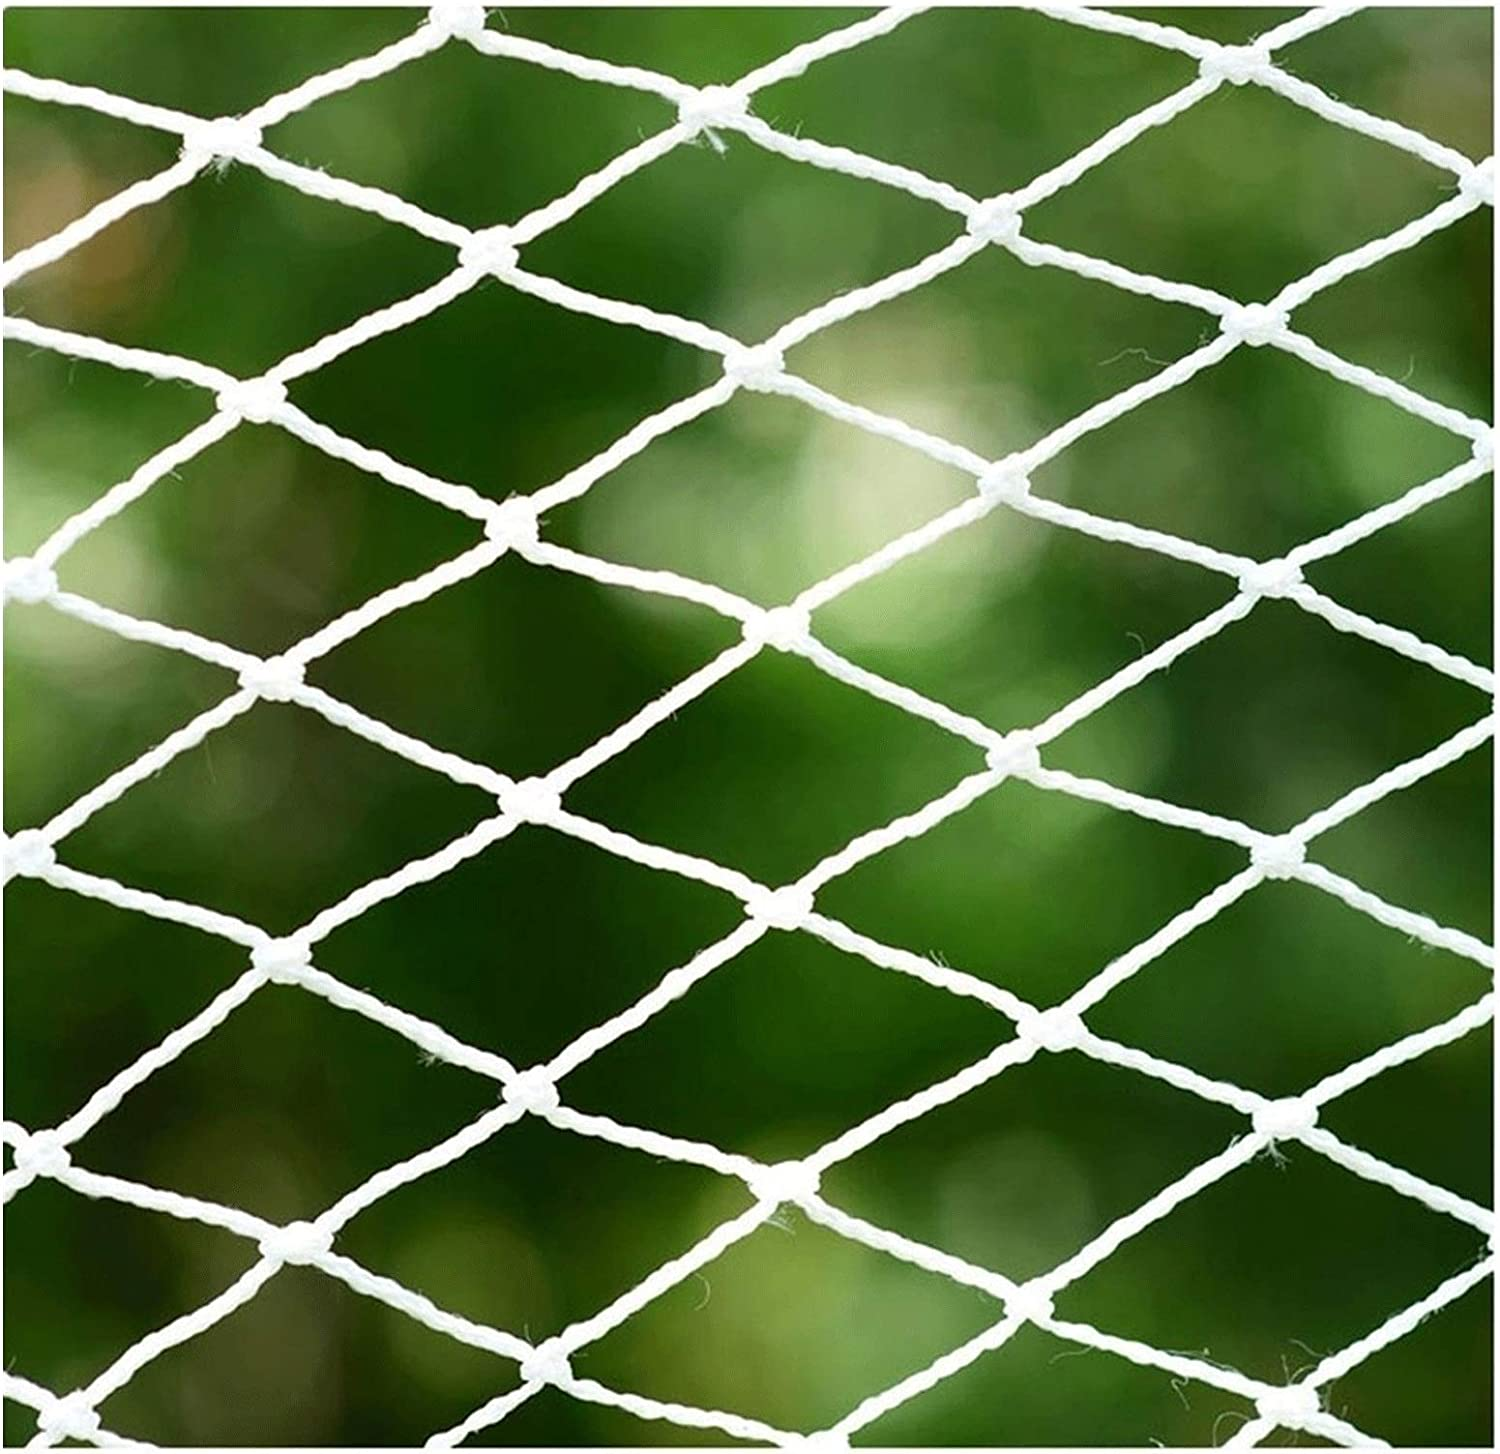 Xink-fhw Safety Rope Sale special gift price Netting Building Protecti Ladder Net